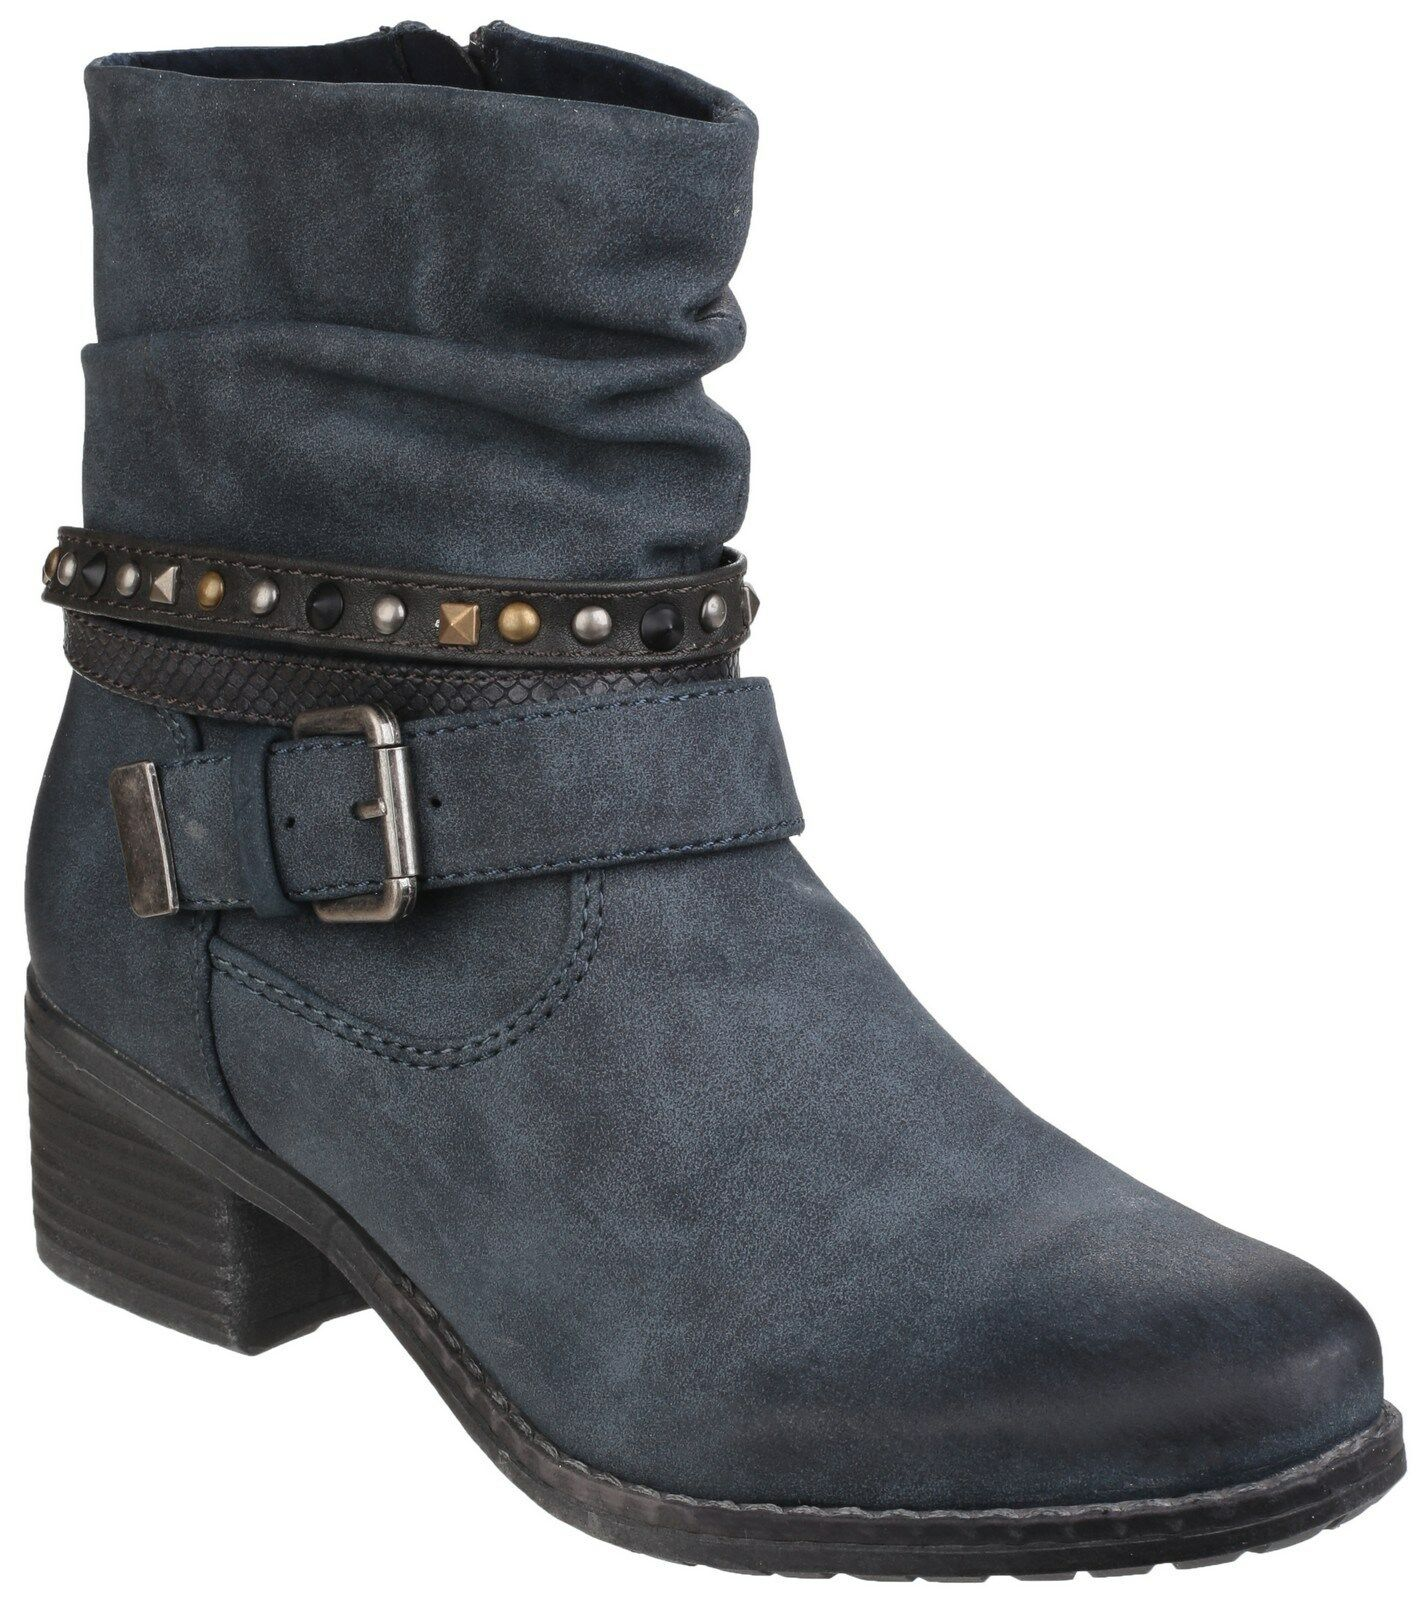 Divaz West Ankle Zip Up Damenschuhe Navy Heel Stud Fashion Stud Heel Stiefel Schuhes UK3-8 28c4cb